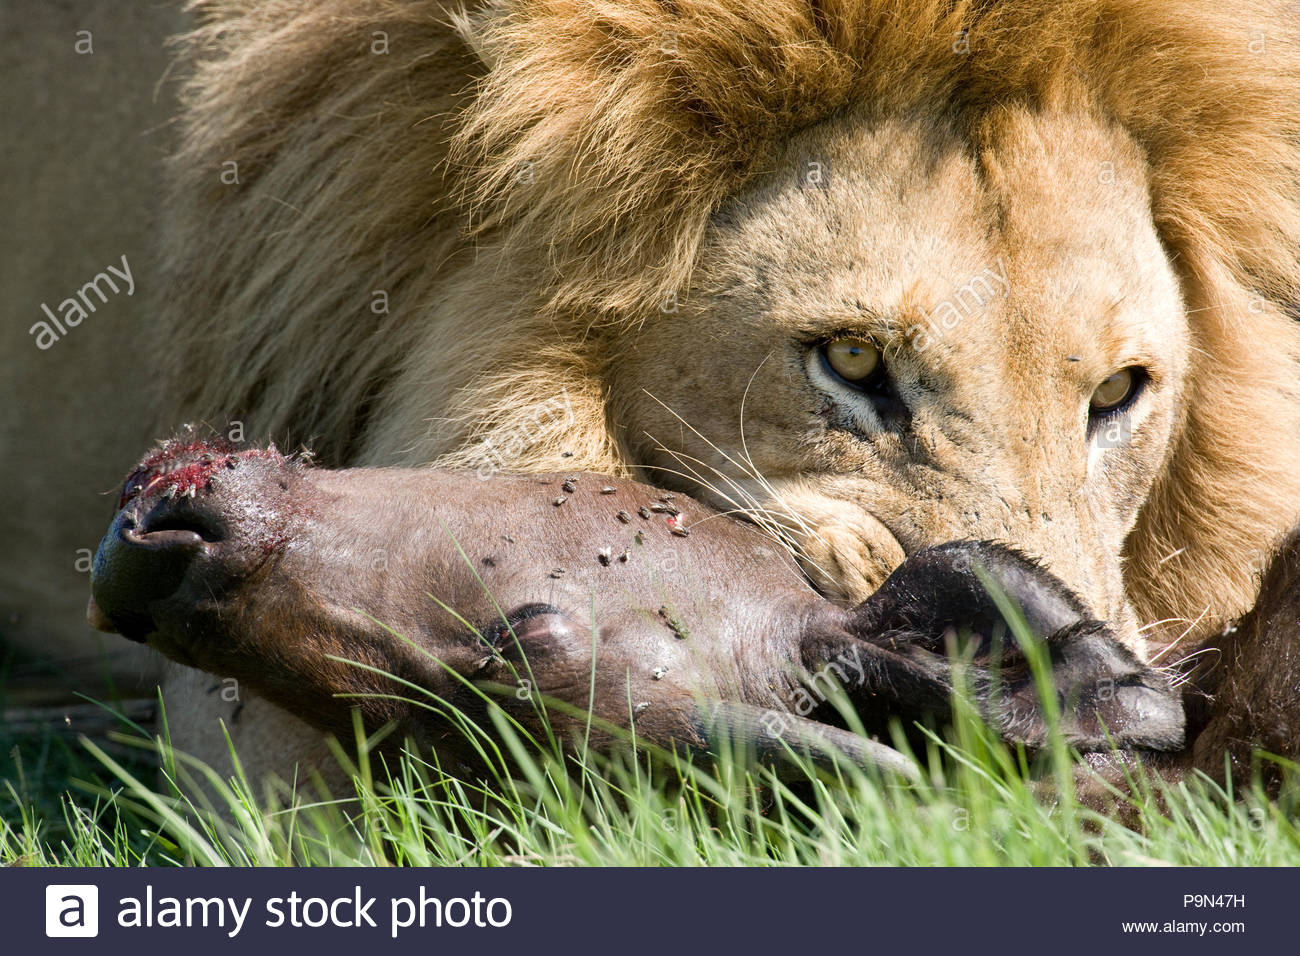 A lion with a freshly killed water buffalo. - Stock Image